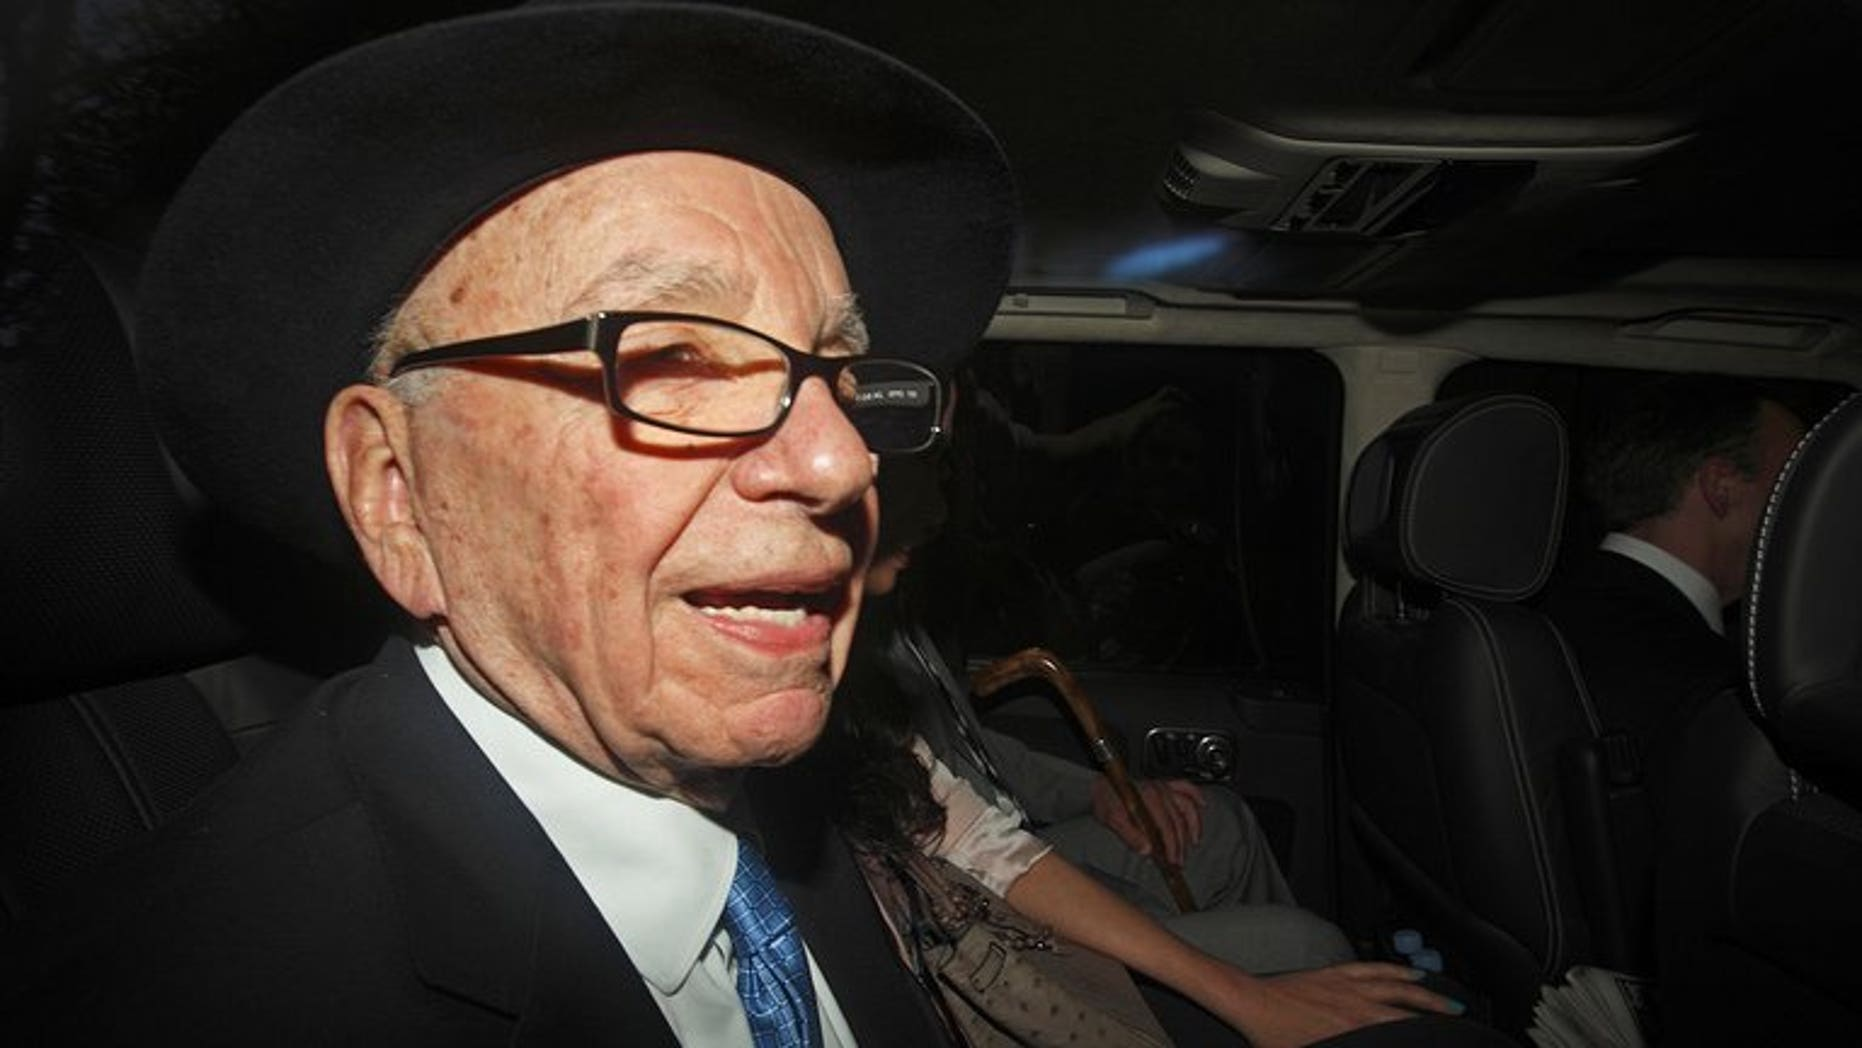 """Rupert Murdoch is seen in a car in central London on April 26, 2012. The media tycoon has questioned the """"sense of proportion"""" and time taken by police investigating phone-hacking claims in a letter to MPs."""